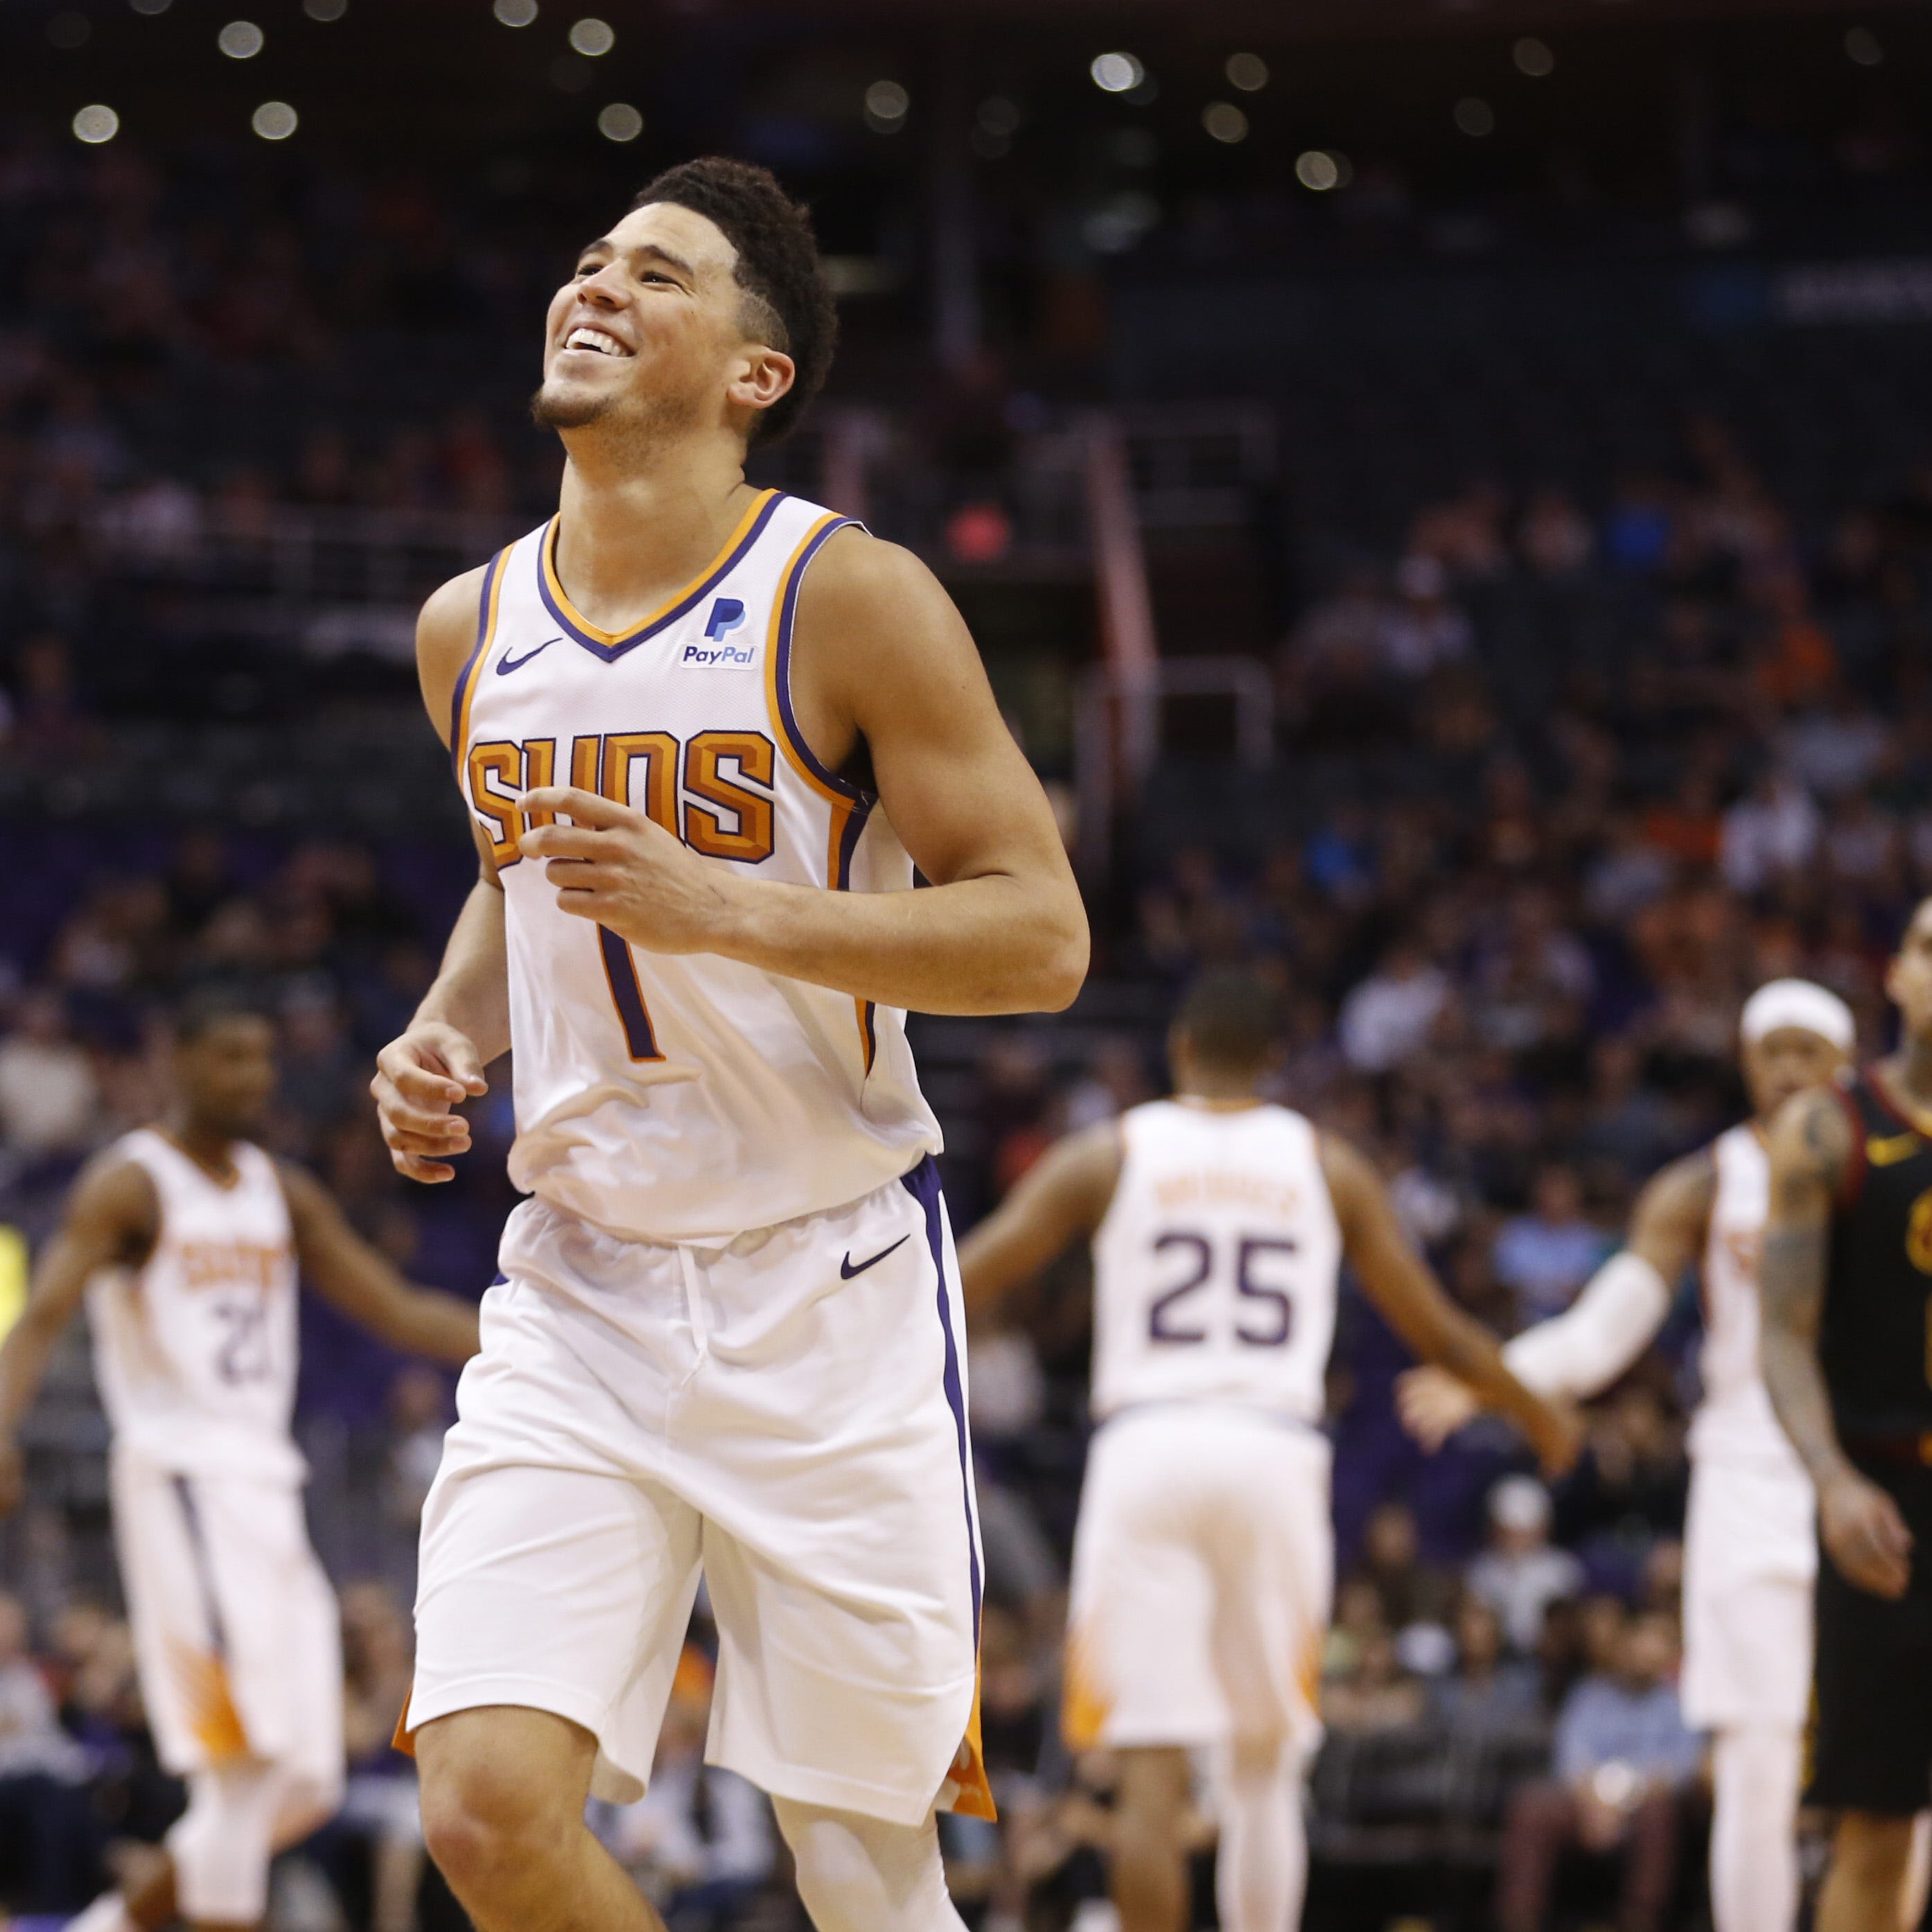 Devin Booker's playmaking leads way in Phoenix Suns' team win over Cleveland Cavaliers